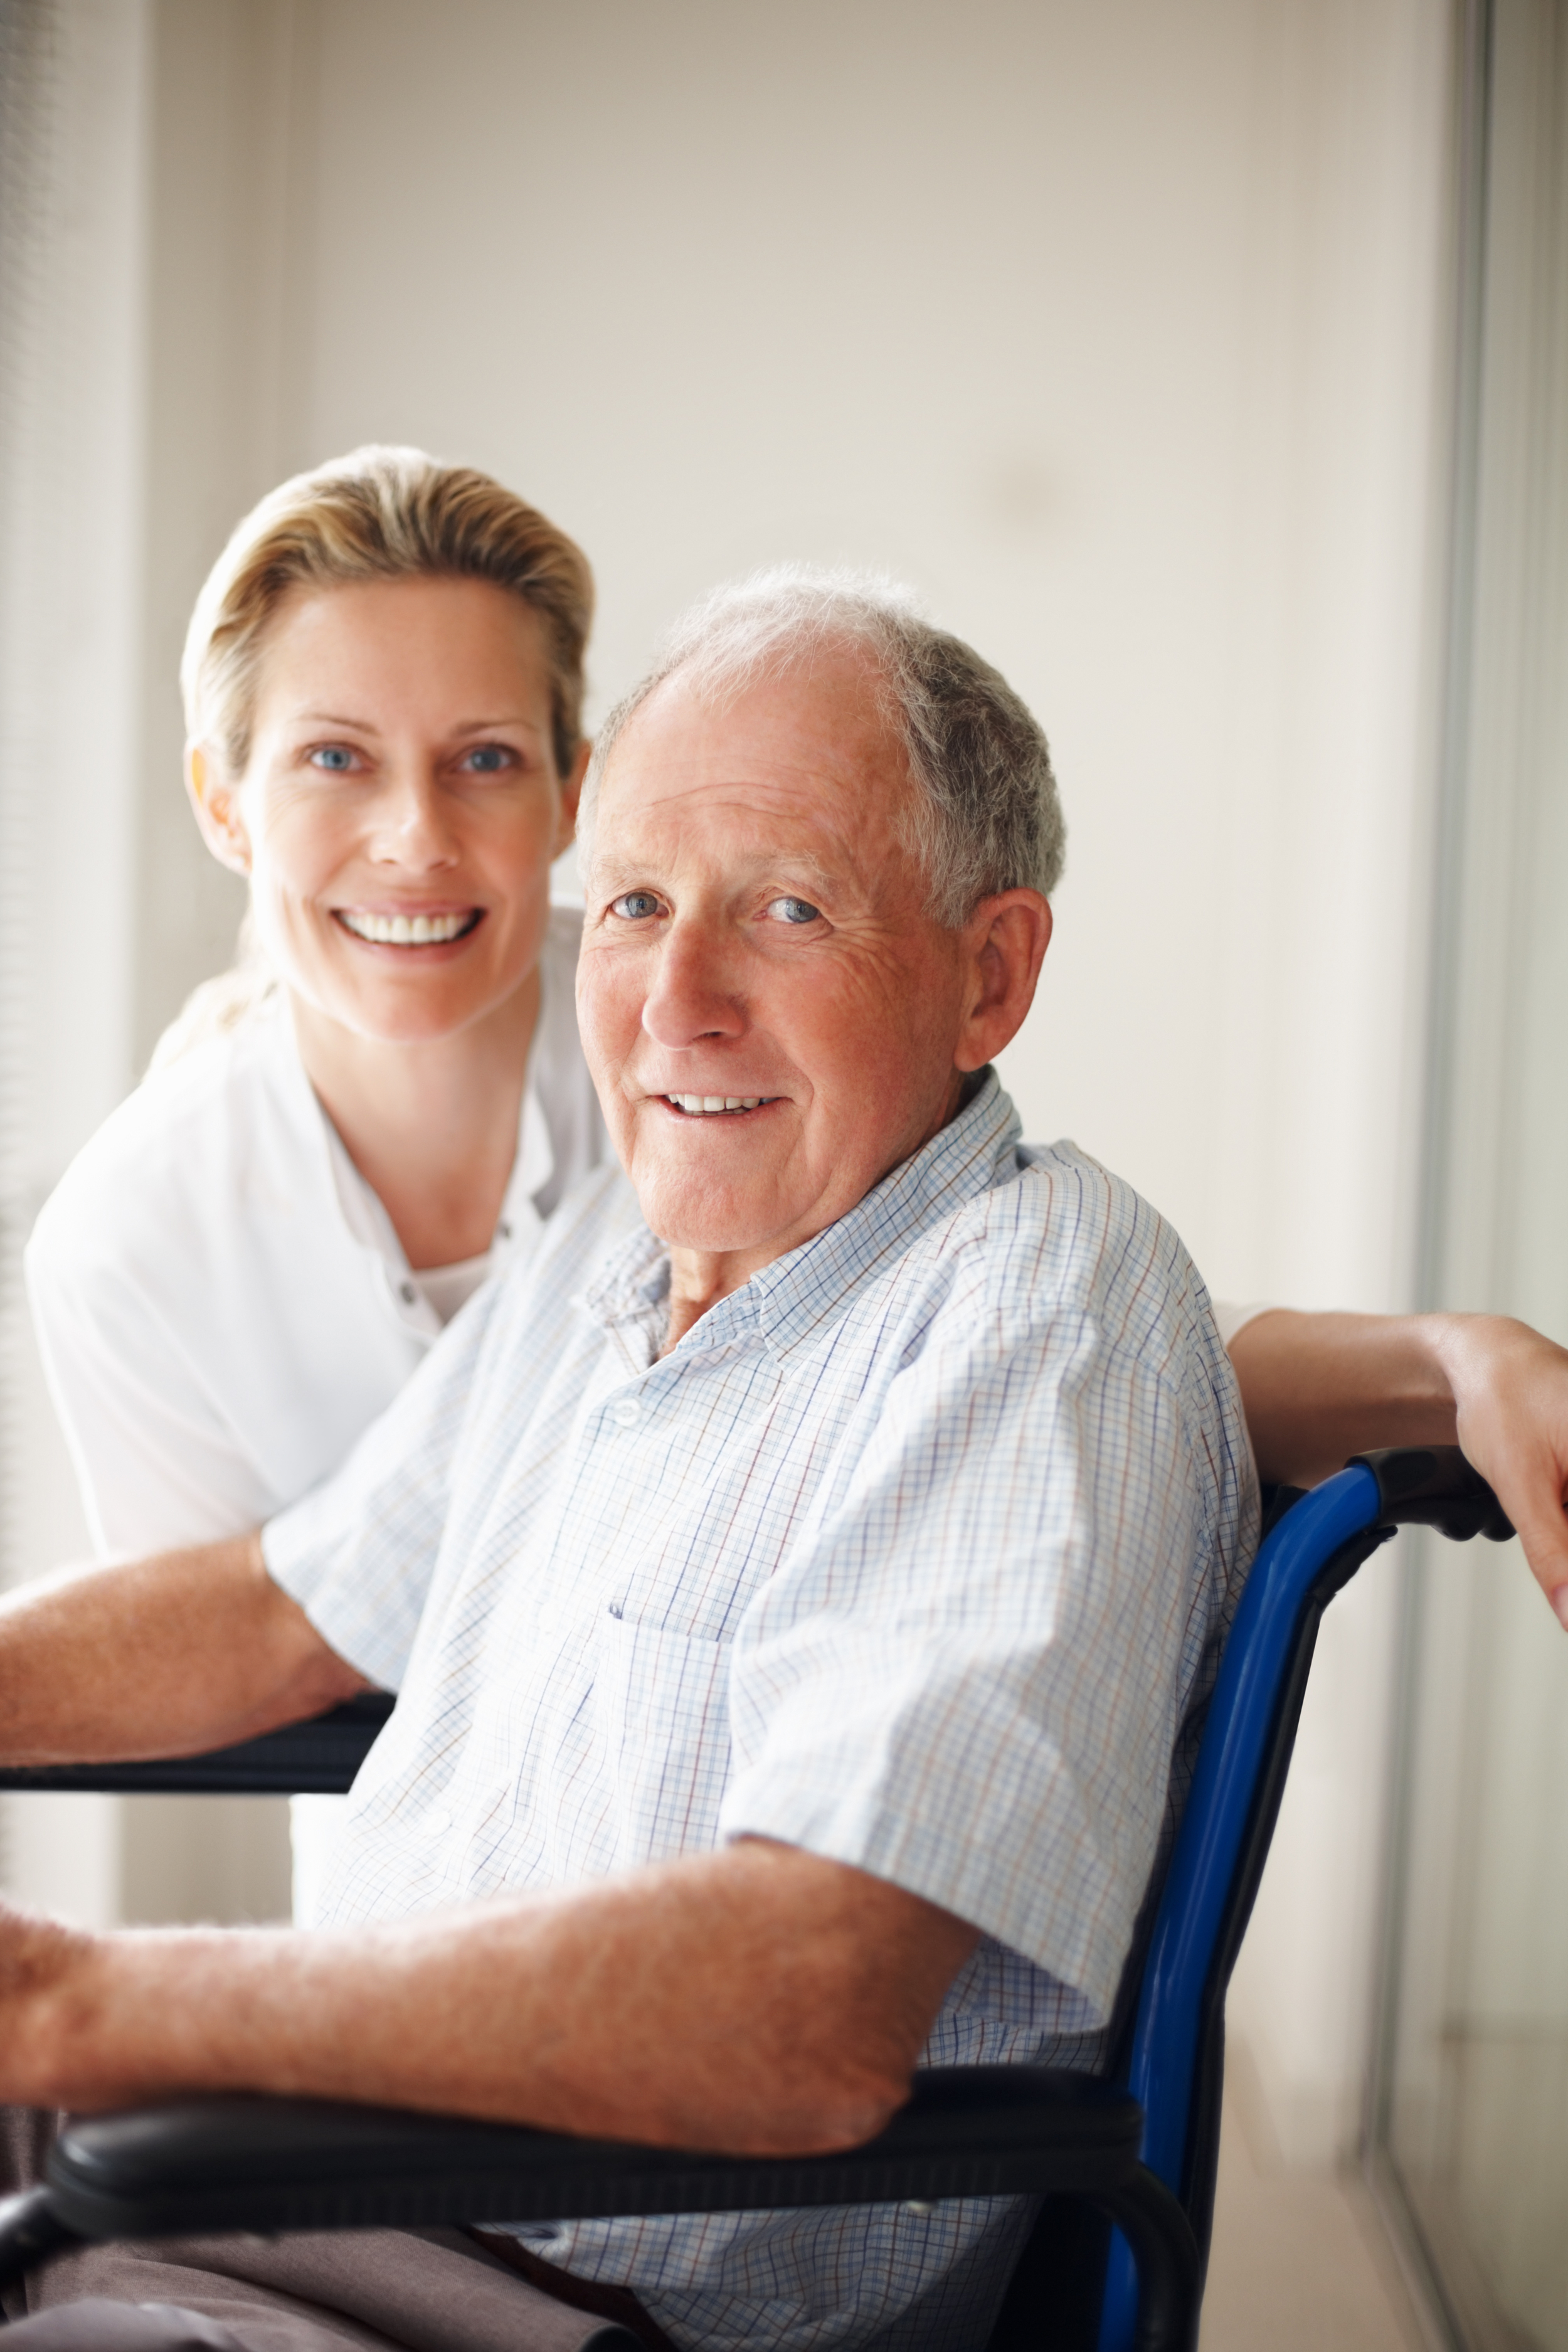 A long-term care insurance policy can help you remain independent and receive quality care when required.